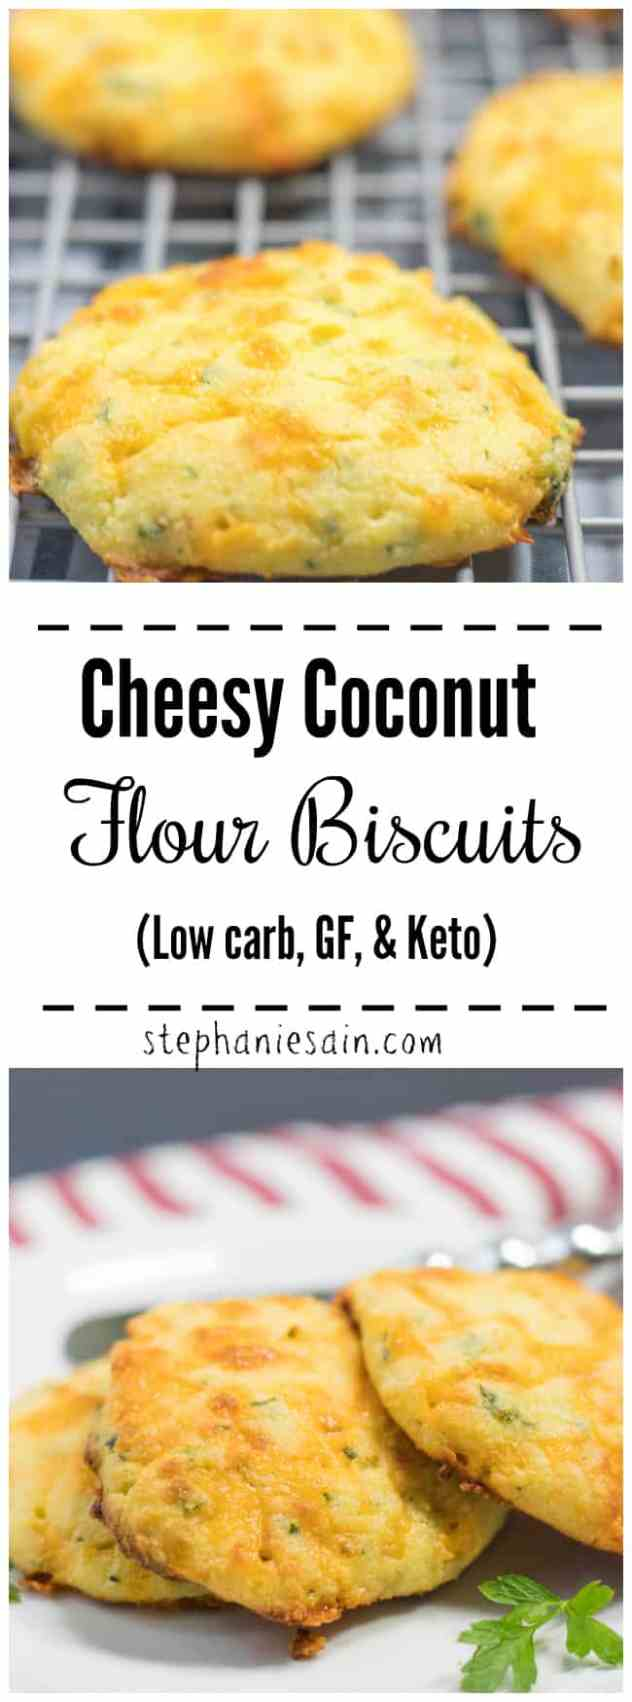 These Coconut Flour Biscuits are loaded with cheese, and garlicky flavor. Great for a side, snacks, breakfast or anytime. A guilt free yummy biscuit that is Low carb, GF, & Keto. Serve them along side any meal or at gatherings. Super easy to make.